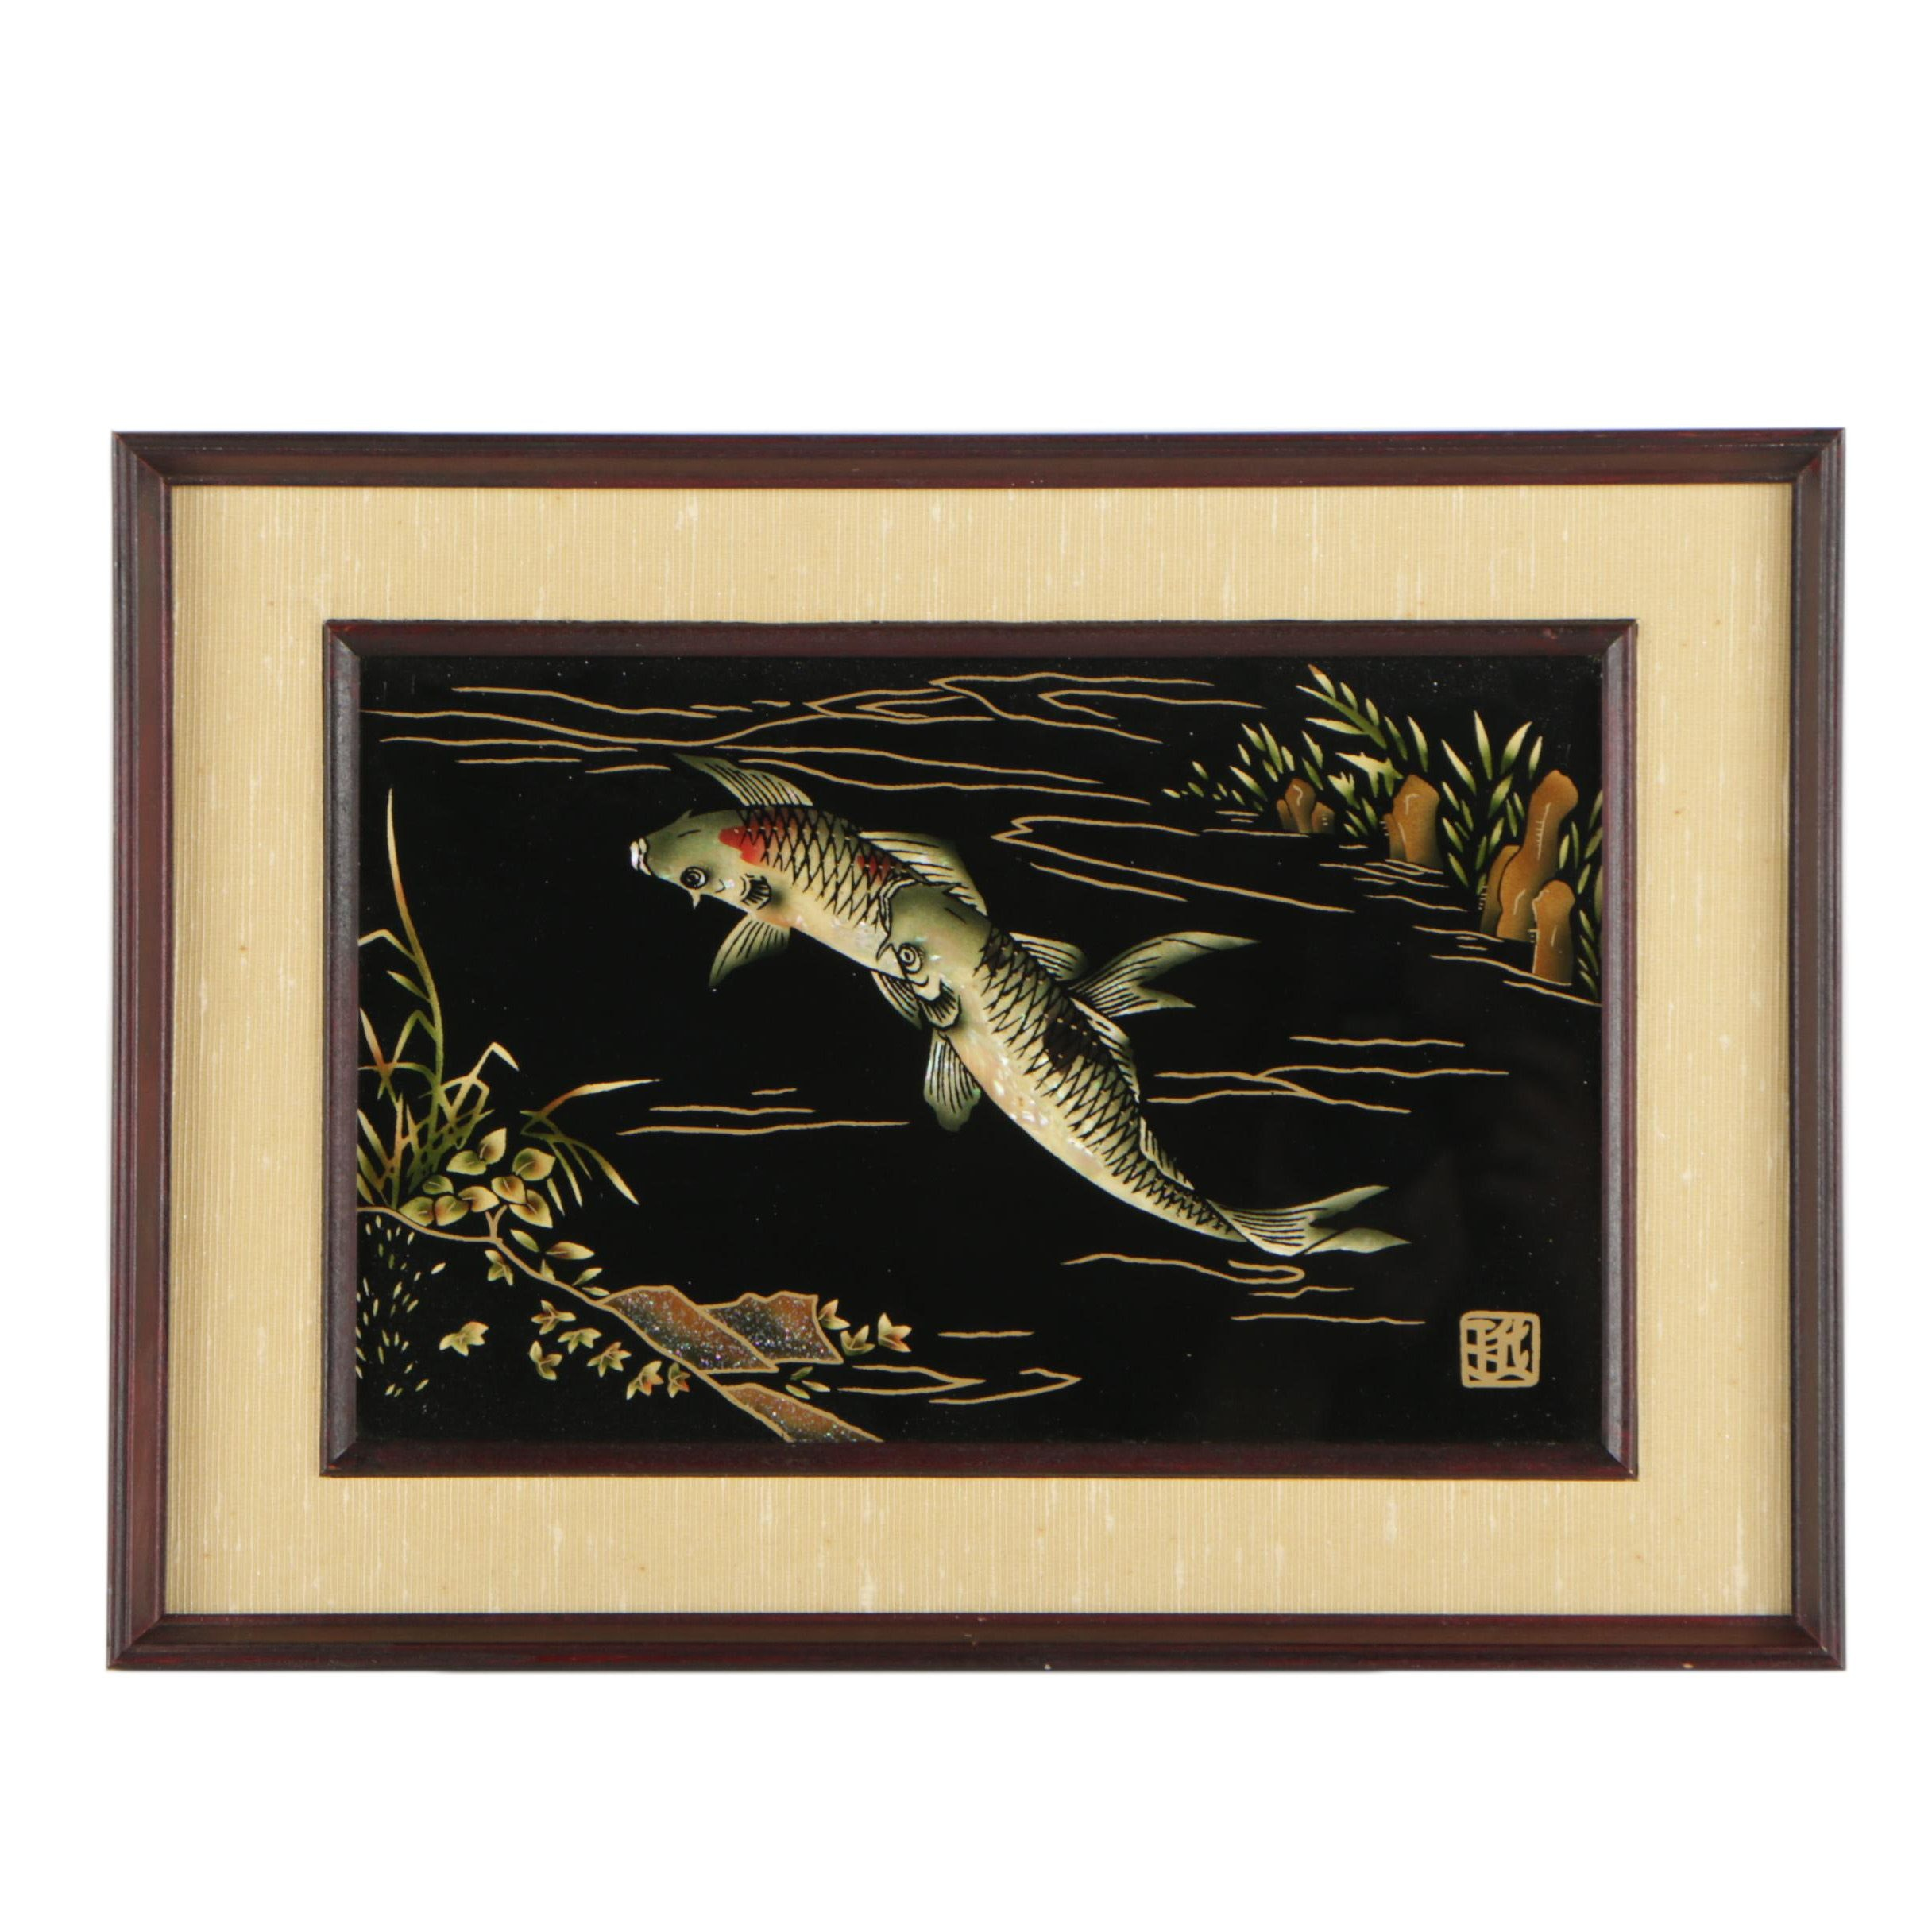 East Asian Reverse Painting on Glass of Koi Fish